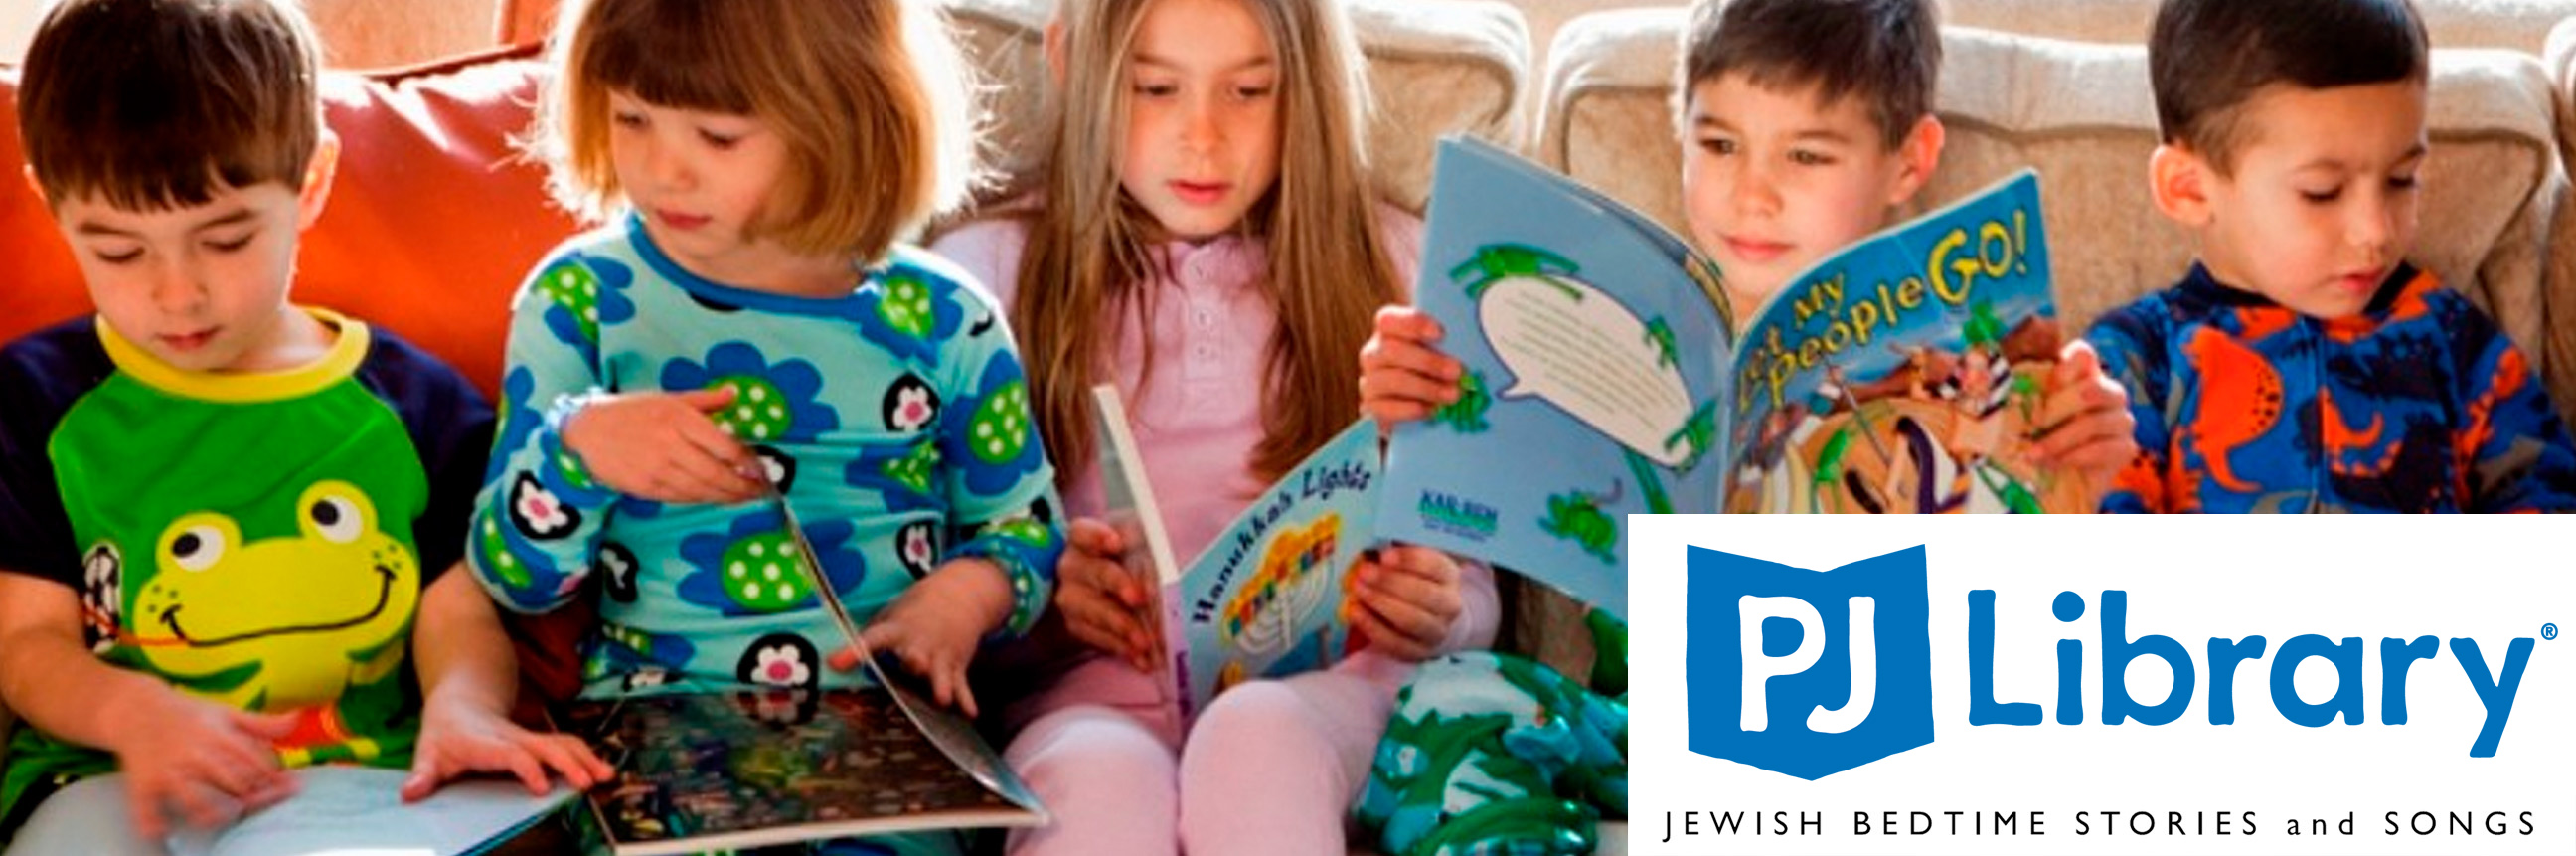 Jewish Community Center Of The Lehigh Valley Pj Library Jcc Of